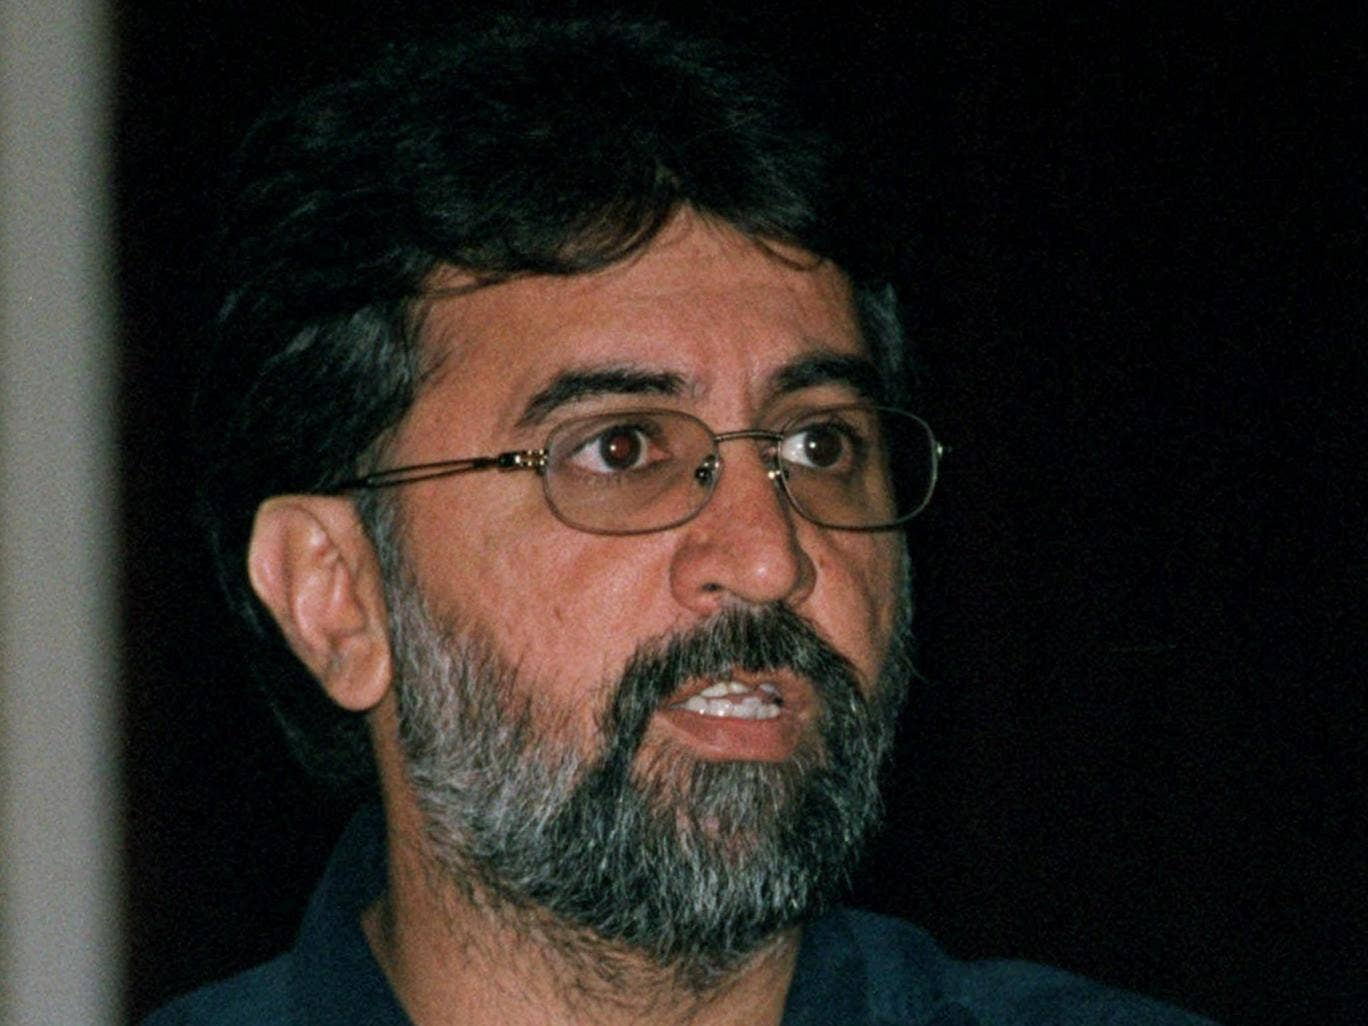 Tehelka editor Tarun Tejpal has been charged with the assault and rape of a woman reporter